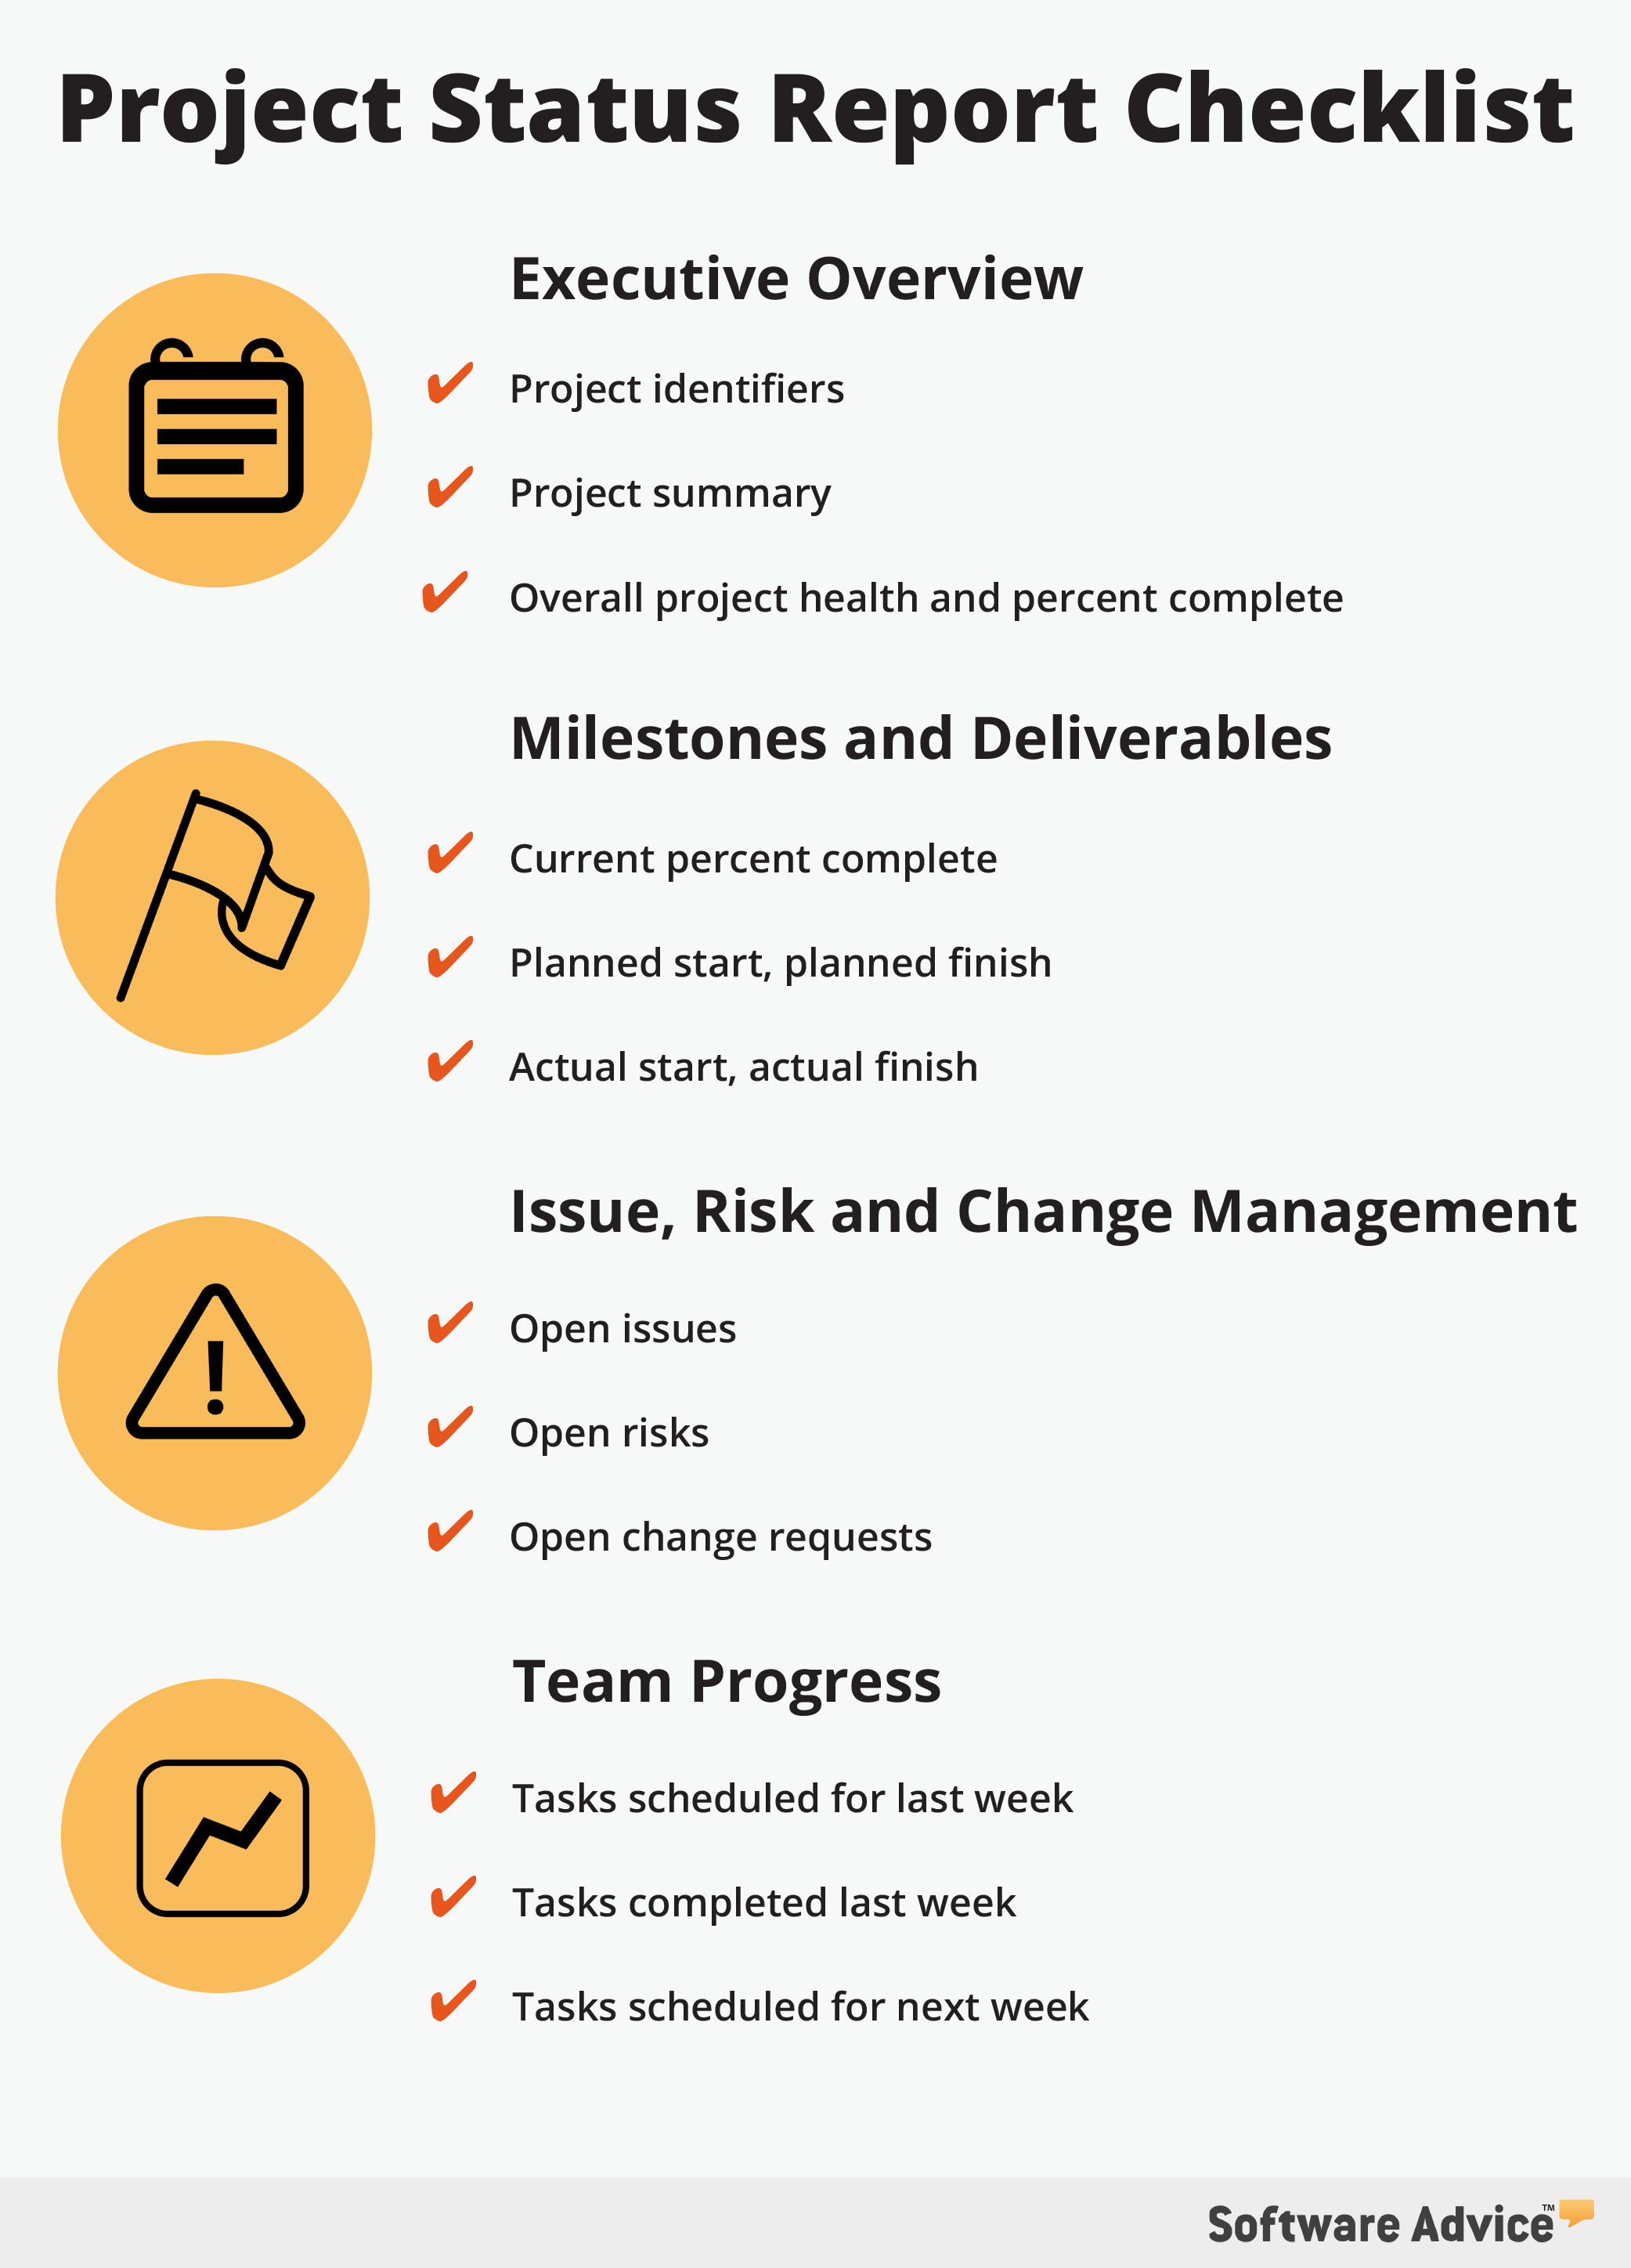 Project Status Report Checklist - Software Advice - This ...